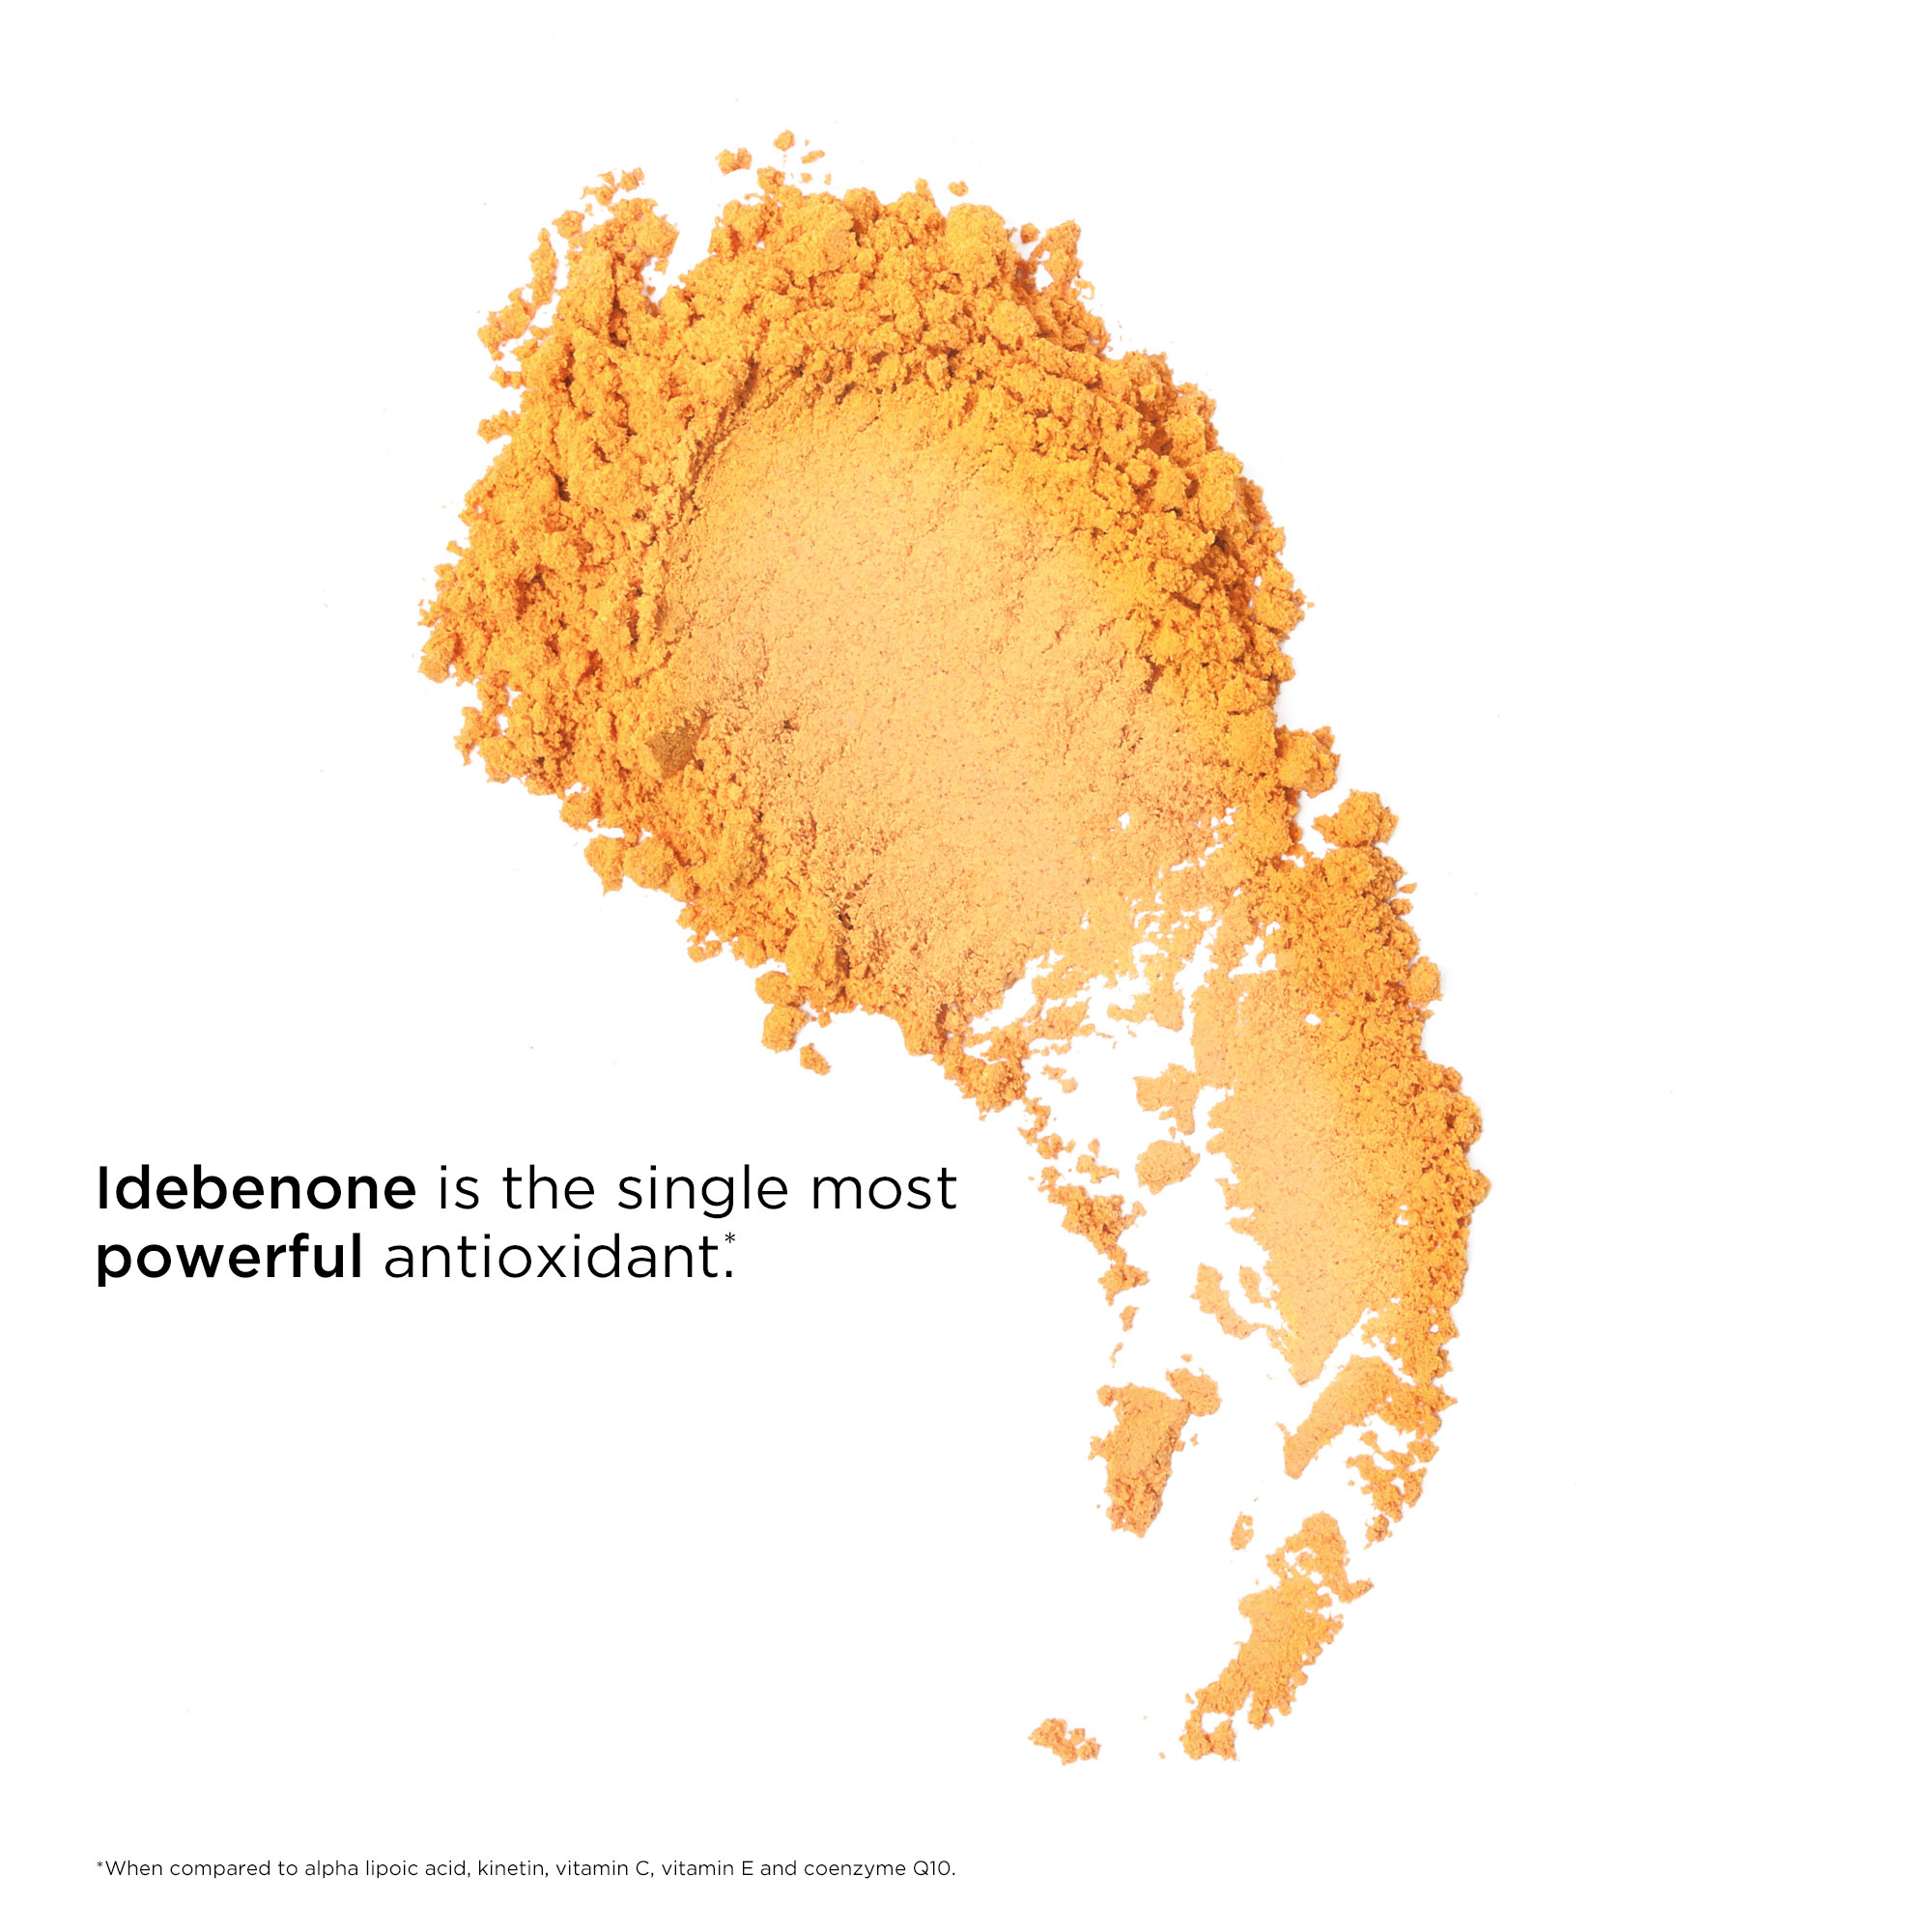 Idebenone is the single most powerful antioxident when compared to alpha lipoic acid, kinetin. Vitamin c, vitamin e, and coenzyme Q10.